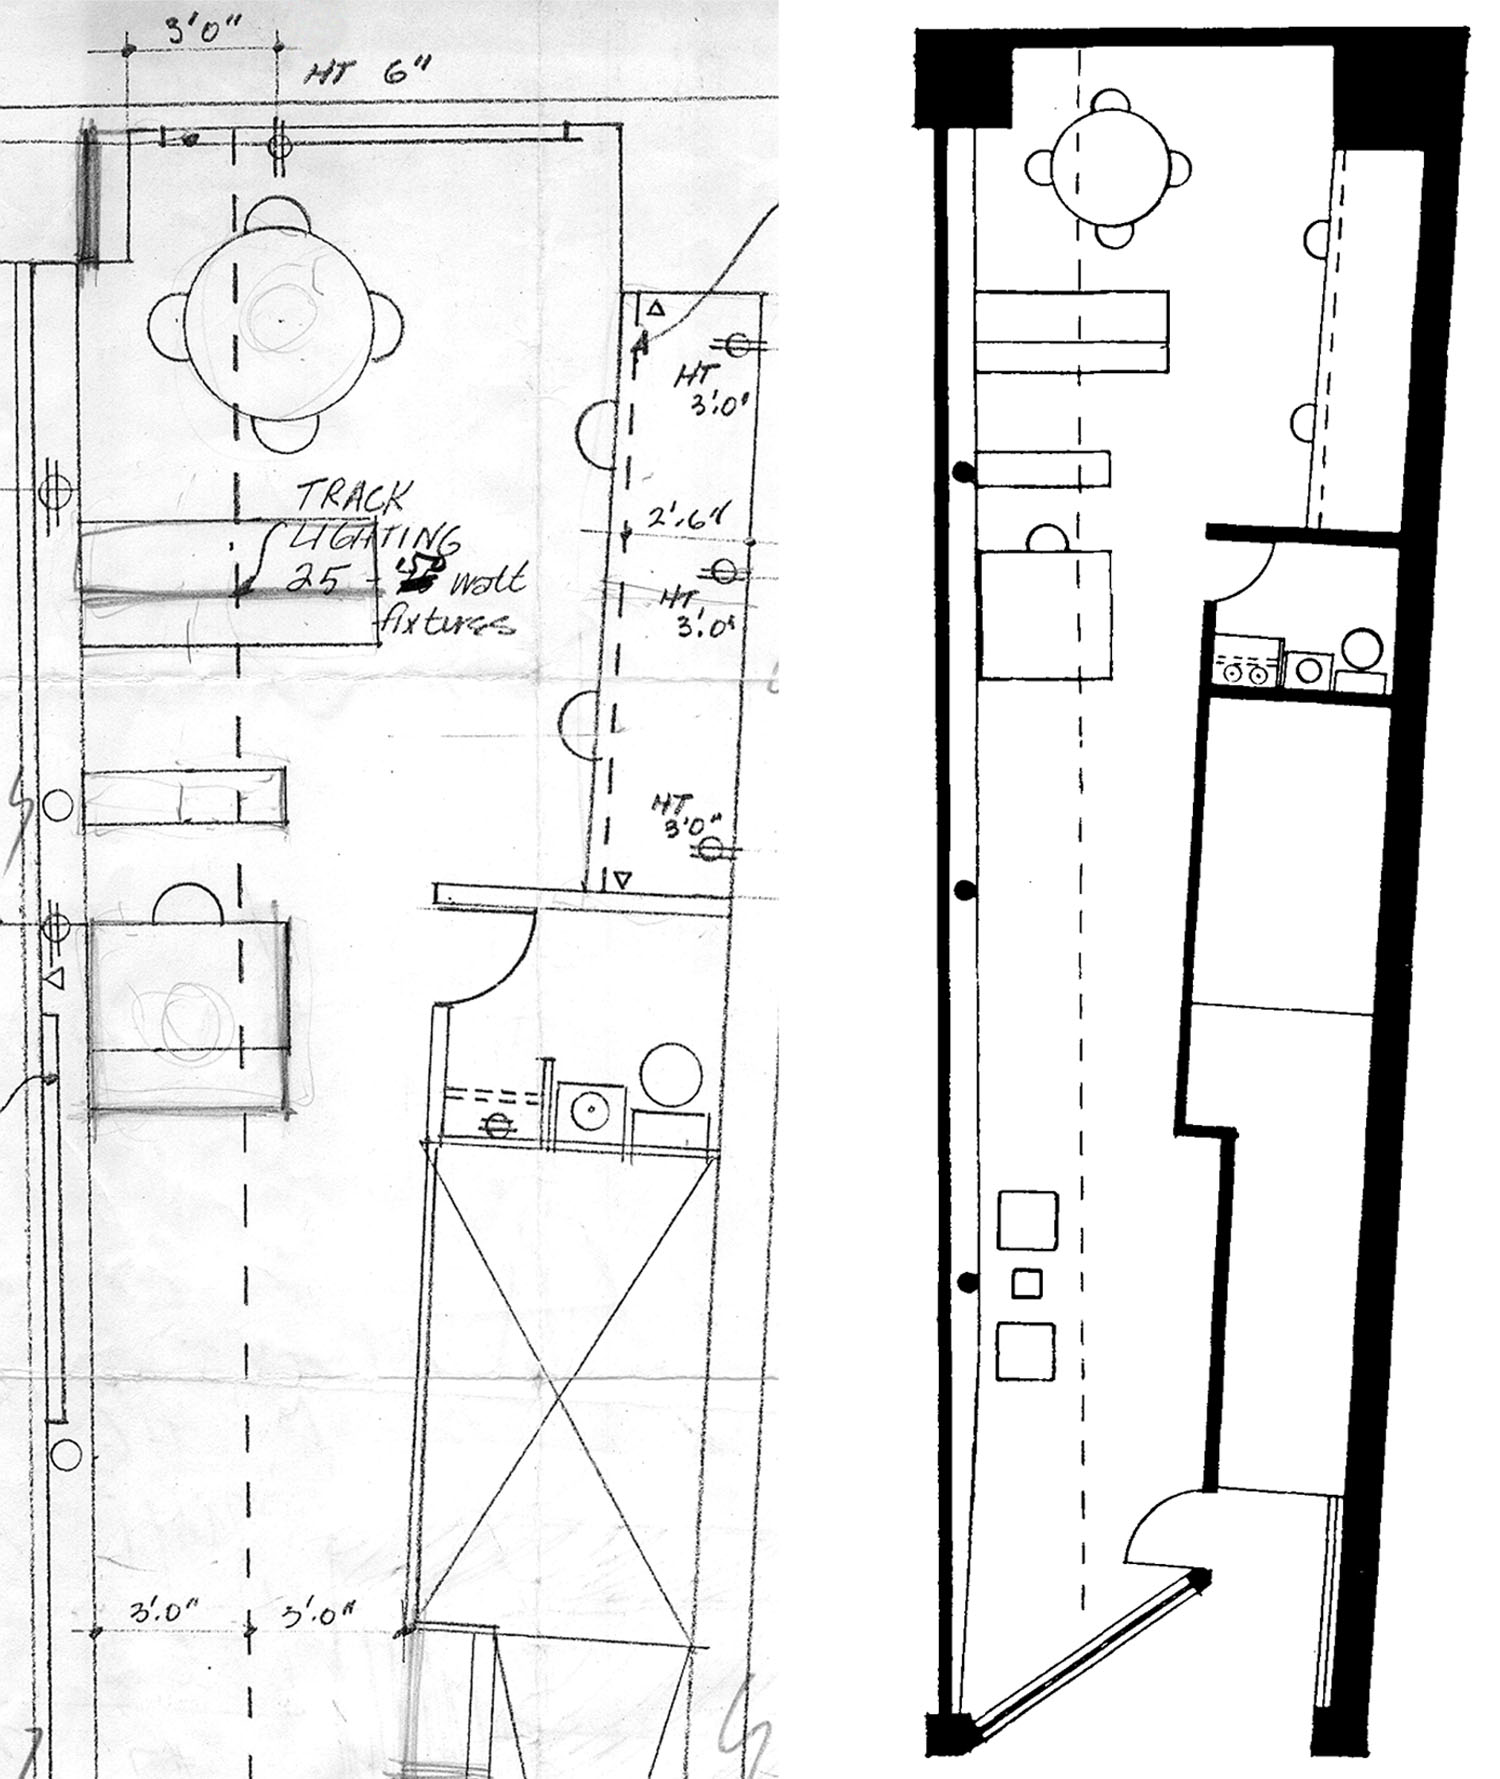 316 East 53rd Street Studio Plan